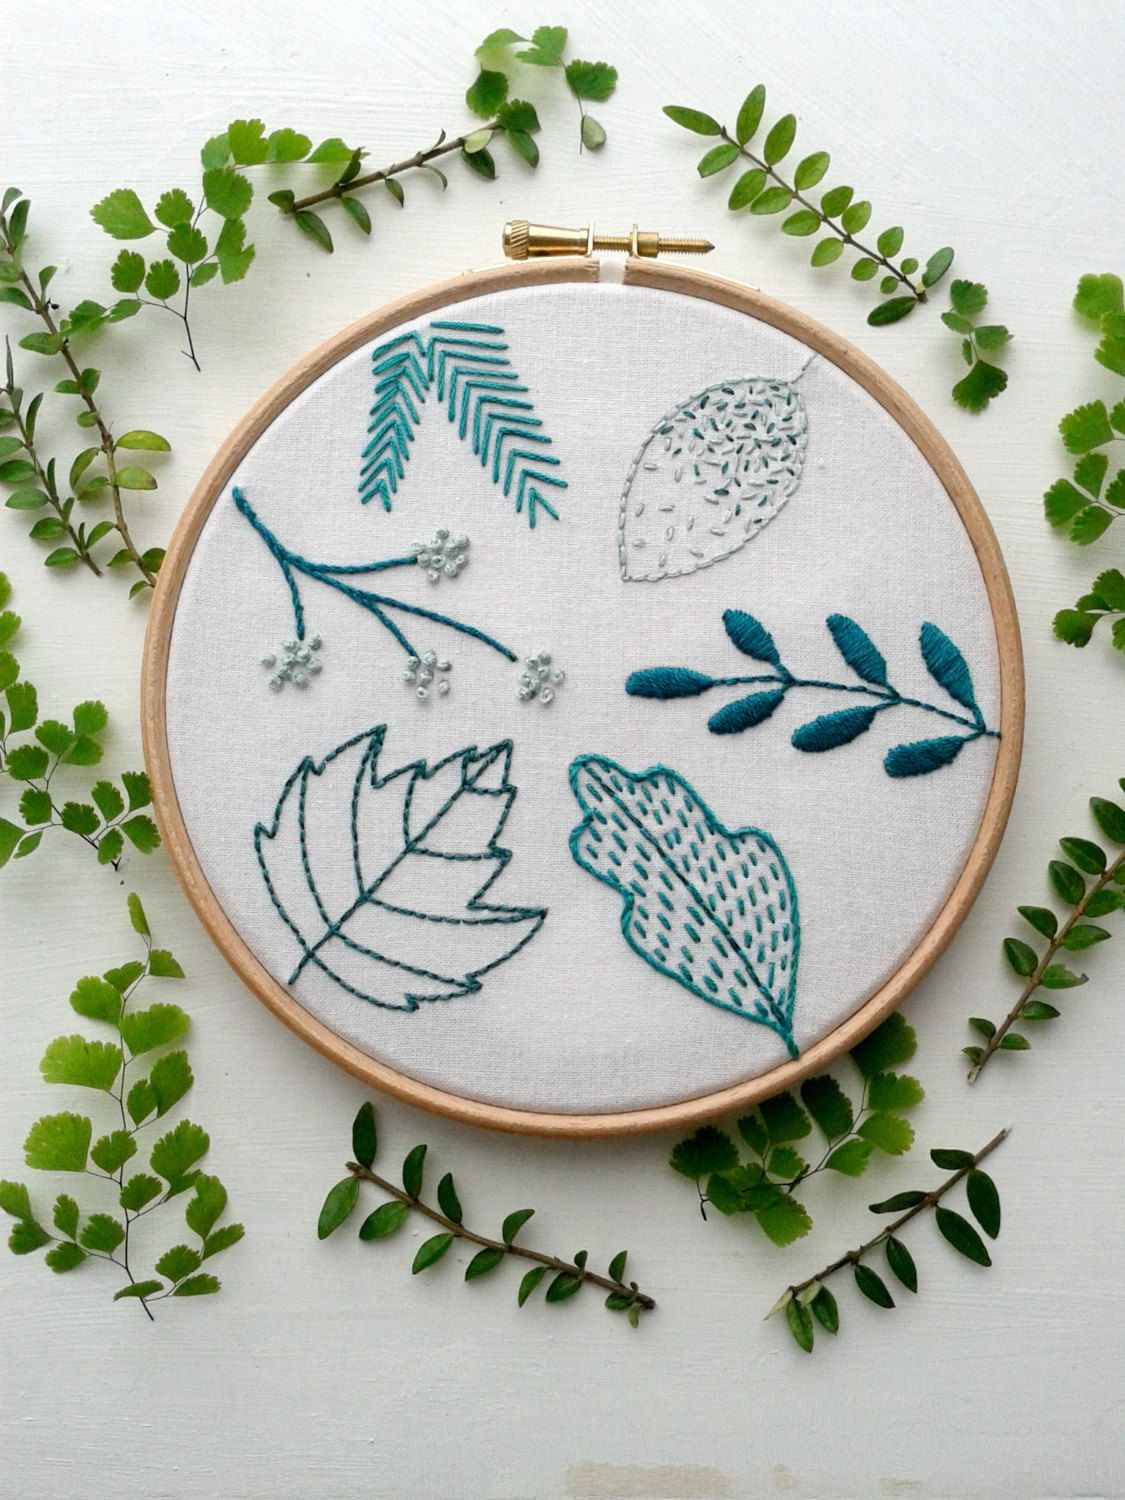 Modern Hand Embroidery Kit Autumn Leaves Imgurl